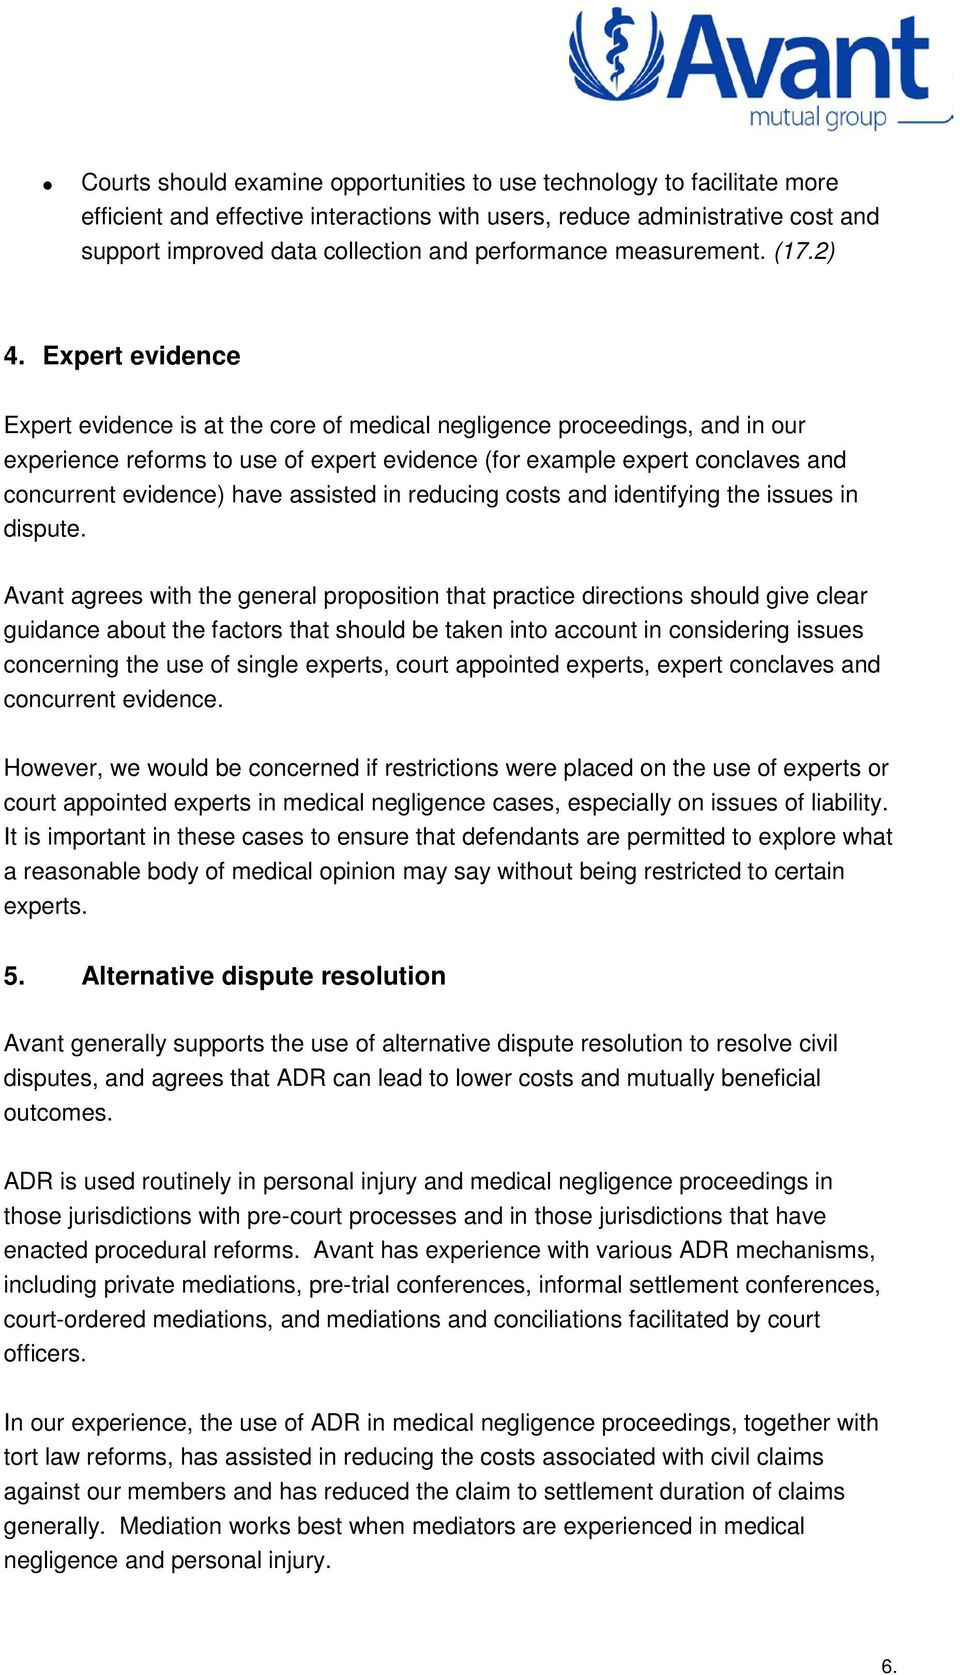 Expert evidence Expert evidence is at the core of medical negligence proceedings, and in our experience reforms to use of expert evidence (for example expert conclaves and concurrent evidence) have